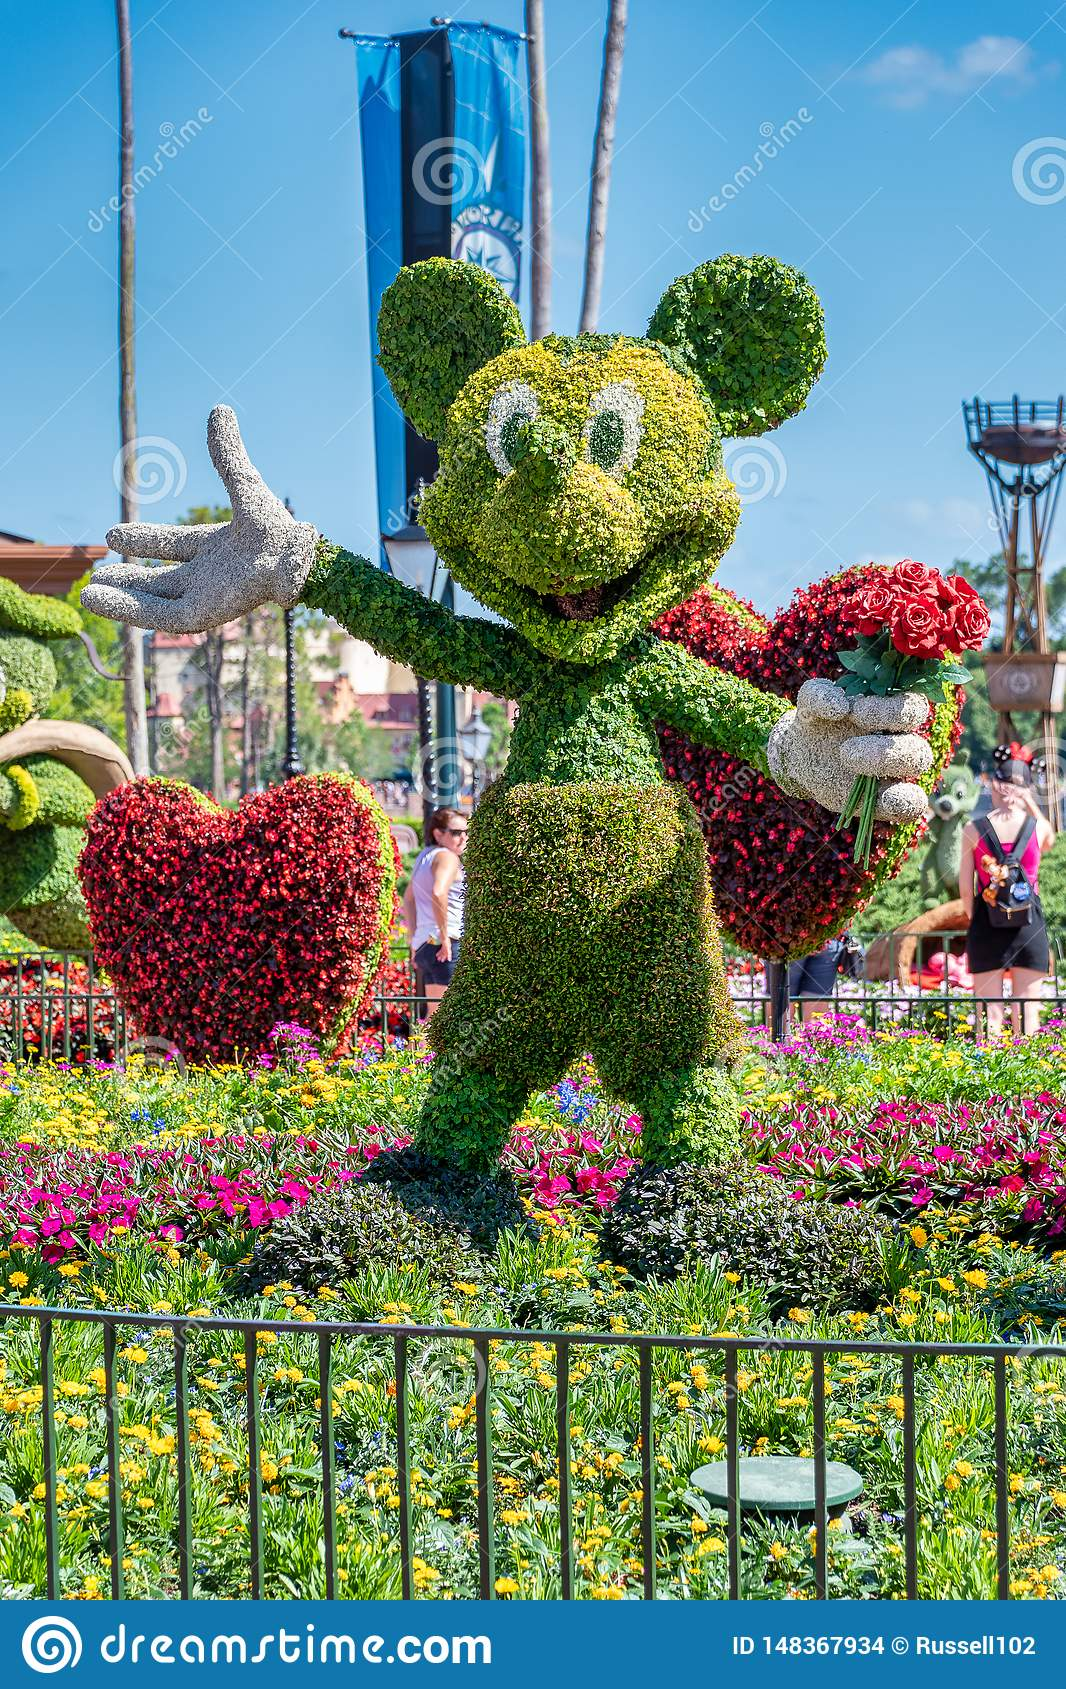 Mickey Mouse Topiary Photos Free Royalty Free Stock Photos From Dreamstime